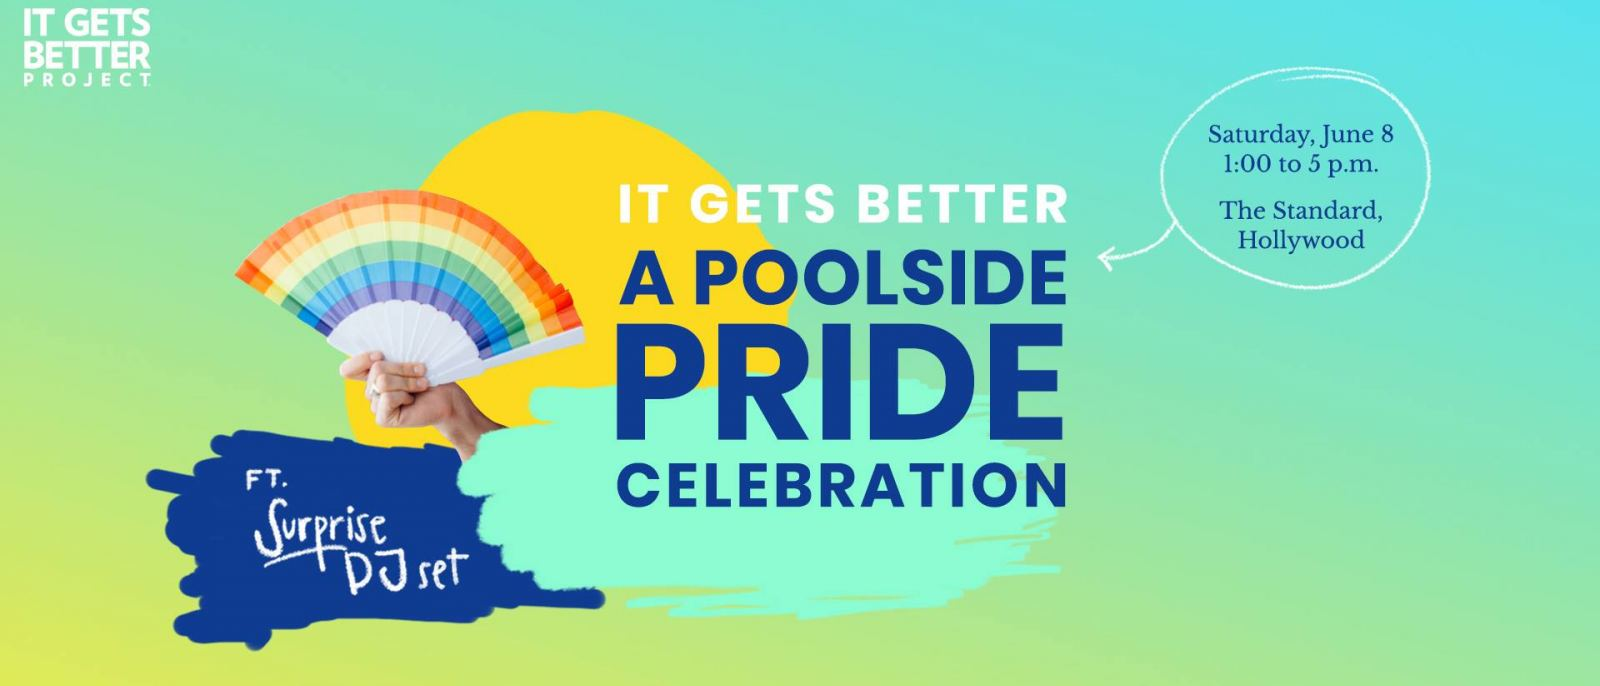 It Gets Better: A Poolside Pride Celebration 2019